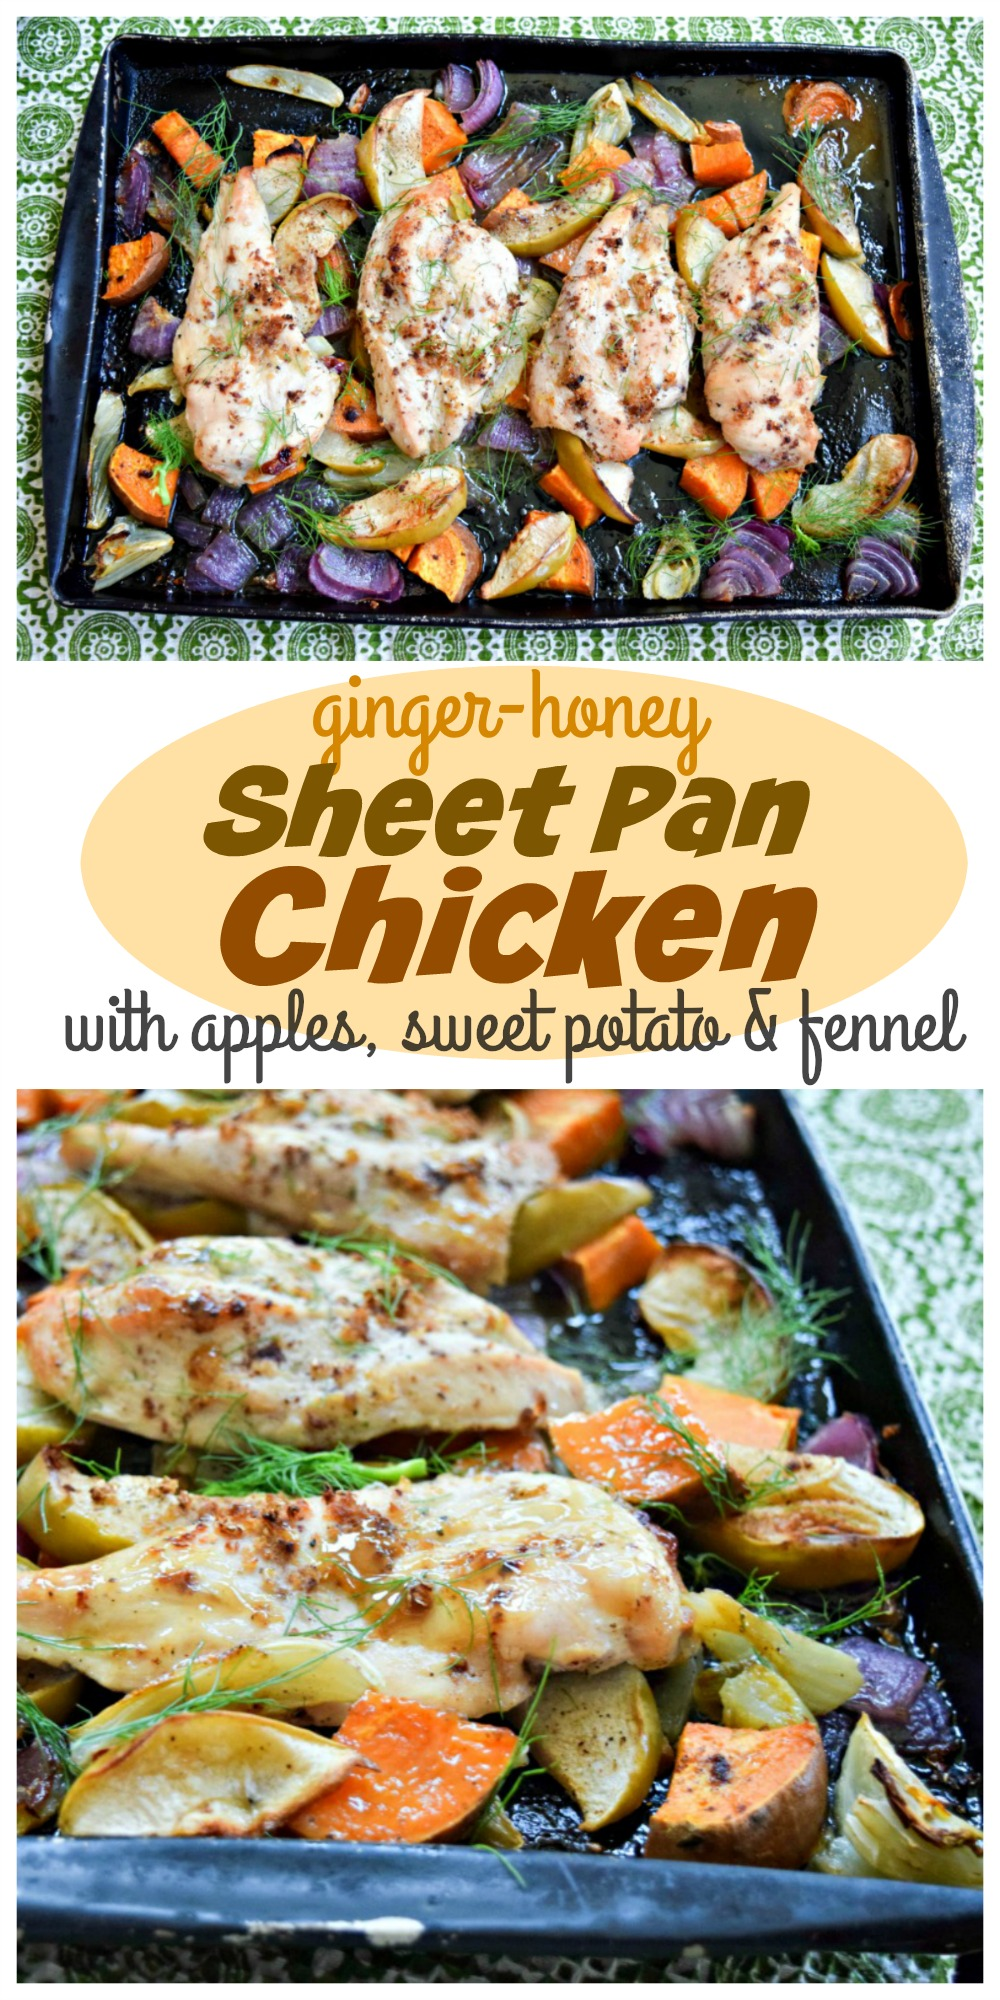 Ginger Honey Sheet Pan Chicken with Apples, Sweet Potato and Fennel a simple yet hearty sheet pan dinner with loads of seasonal vegetables and a touch of honey and ginger. Easy clean-up, great for weeknights!